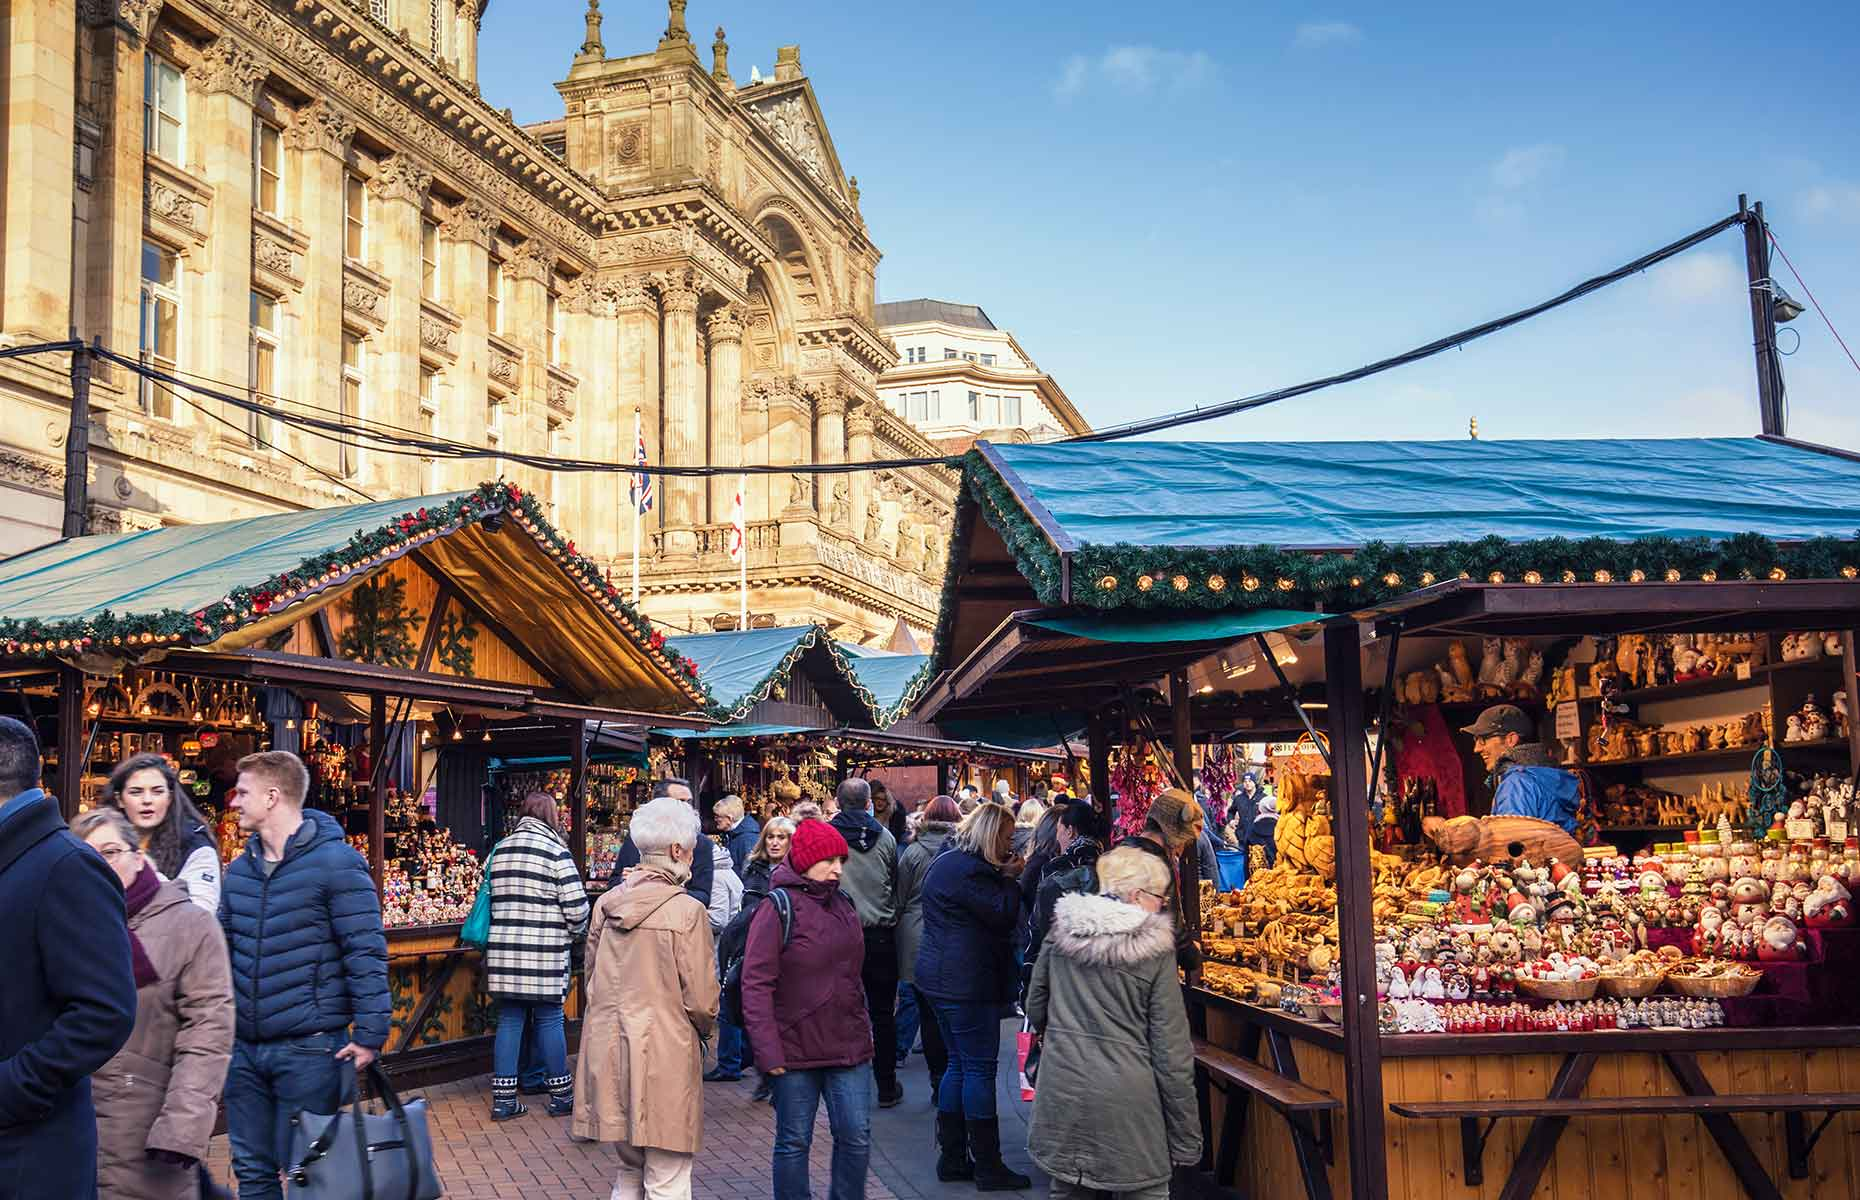 Birmingham Christmas market is the largest Continental market outside Austria and Germany